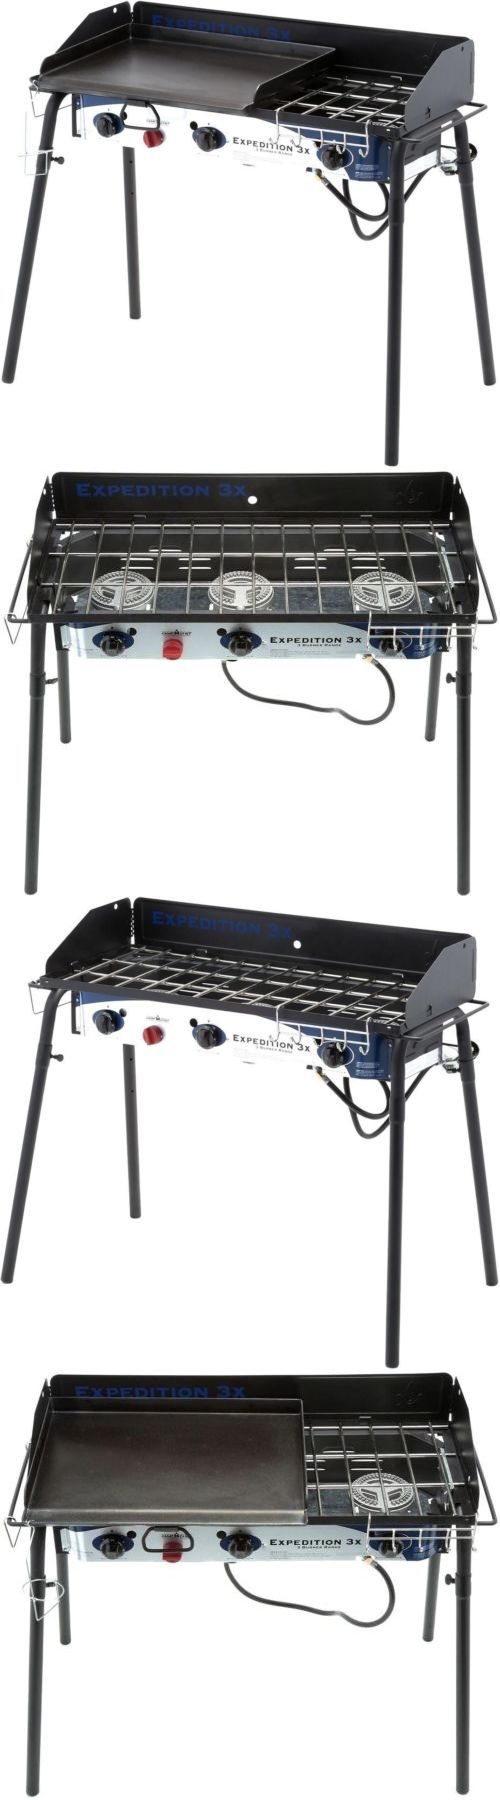 camping bbqs and grills 181388 3 burner propane gas grill black griddle 90000 - Outdoor Kuche Kaufen